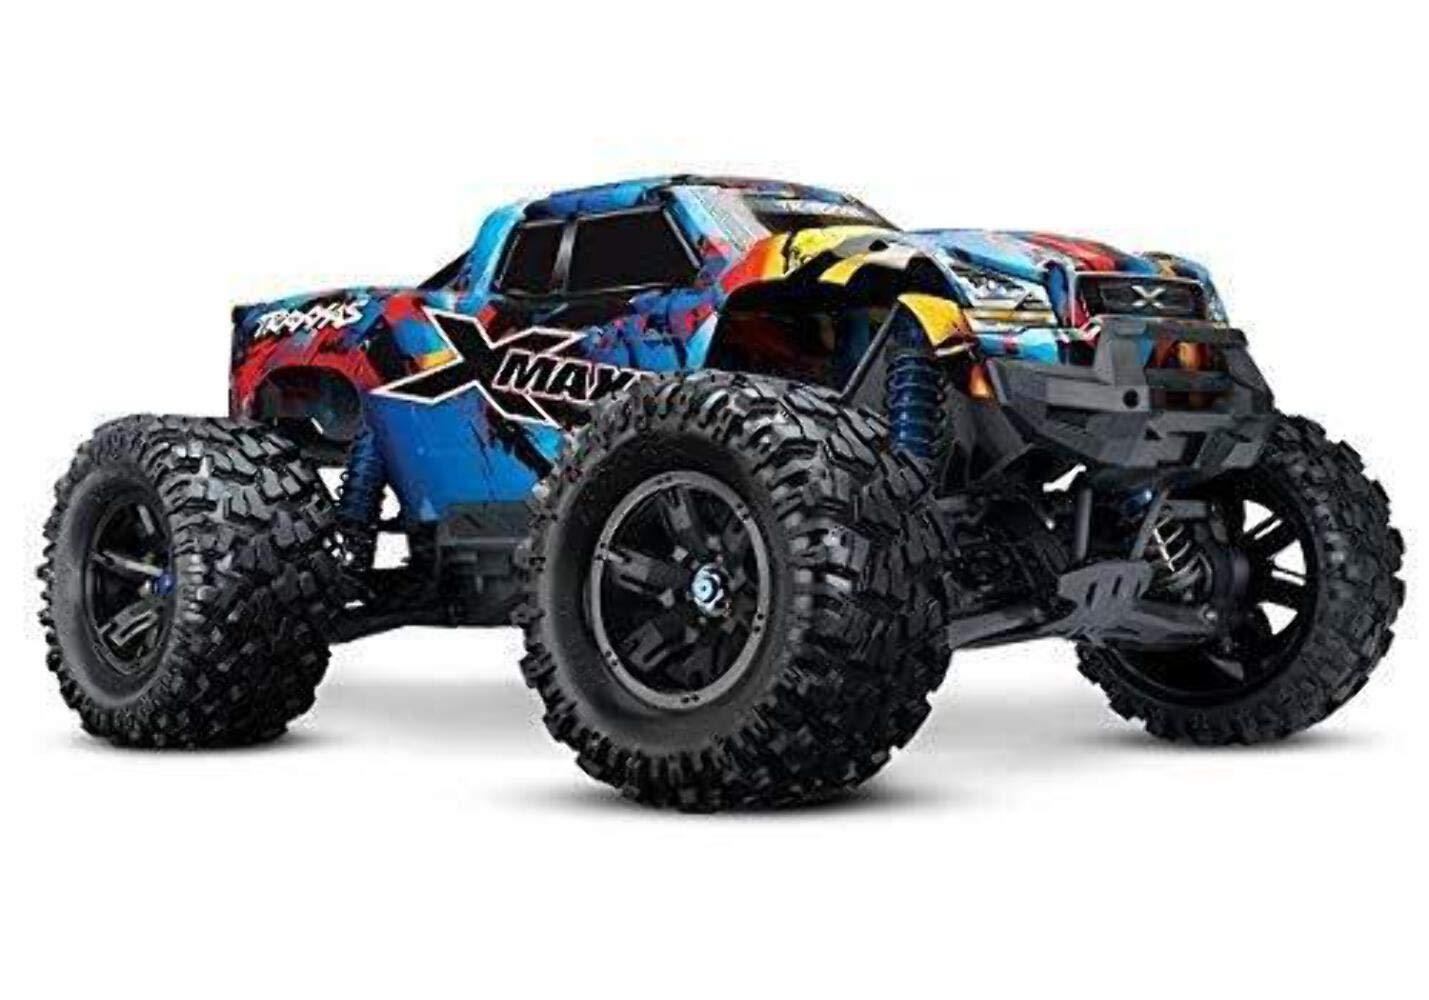 Buy Traxxas X Maxx Brushless Electric Monster Truck With Tqi Link Enabled 2 4ghz Radio System Traxxas Stability Management Tsm Online At Low Prices In India Amazon In